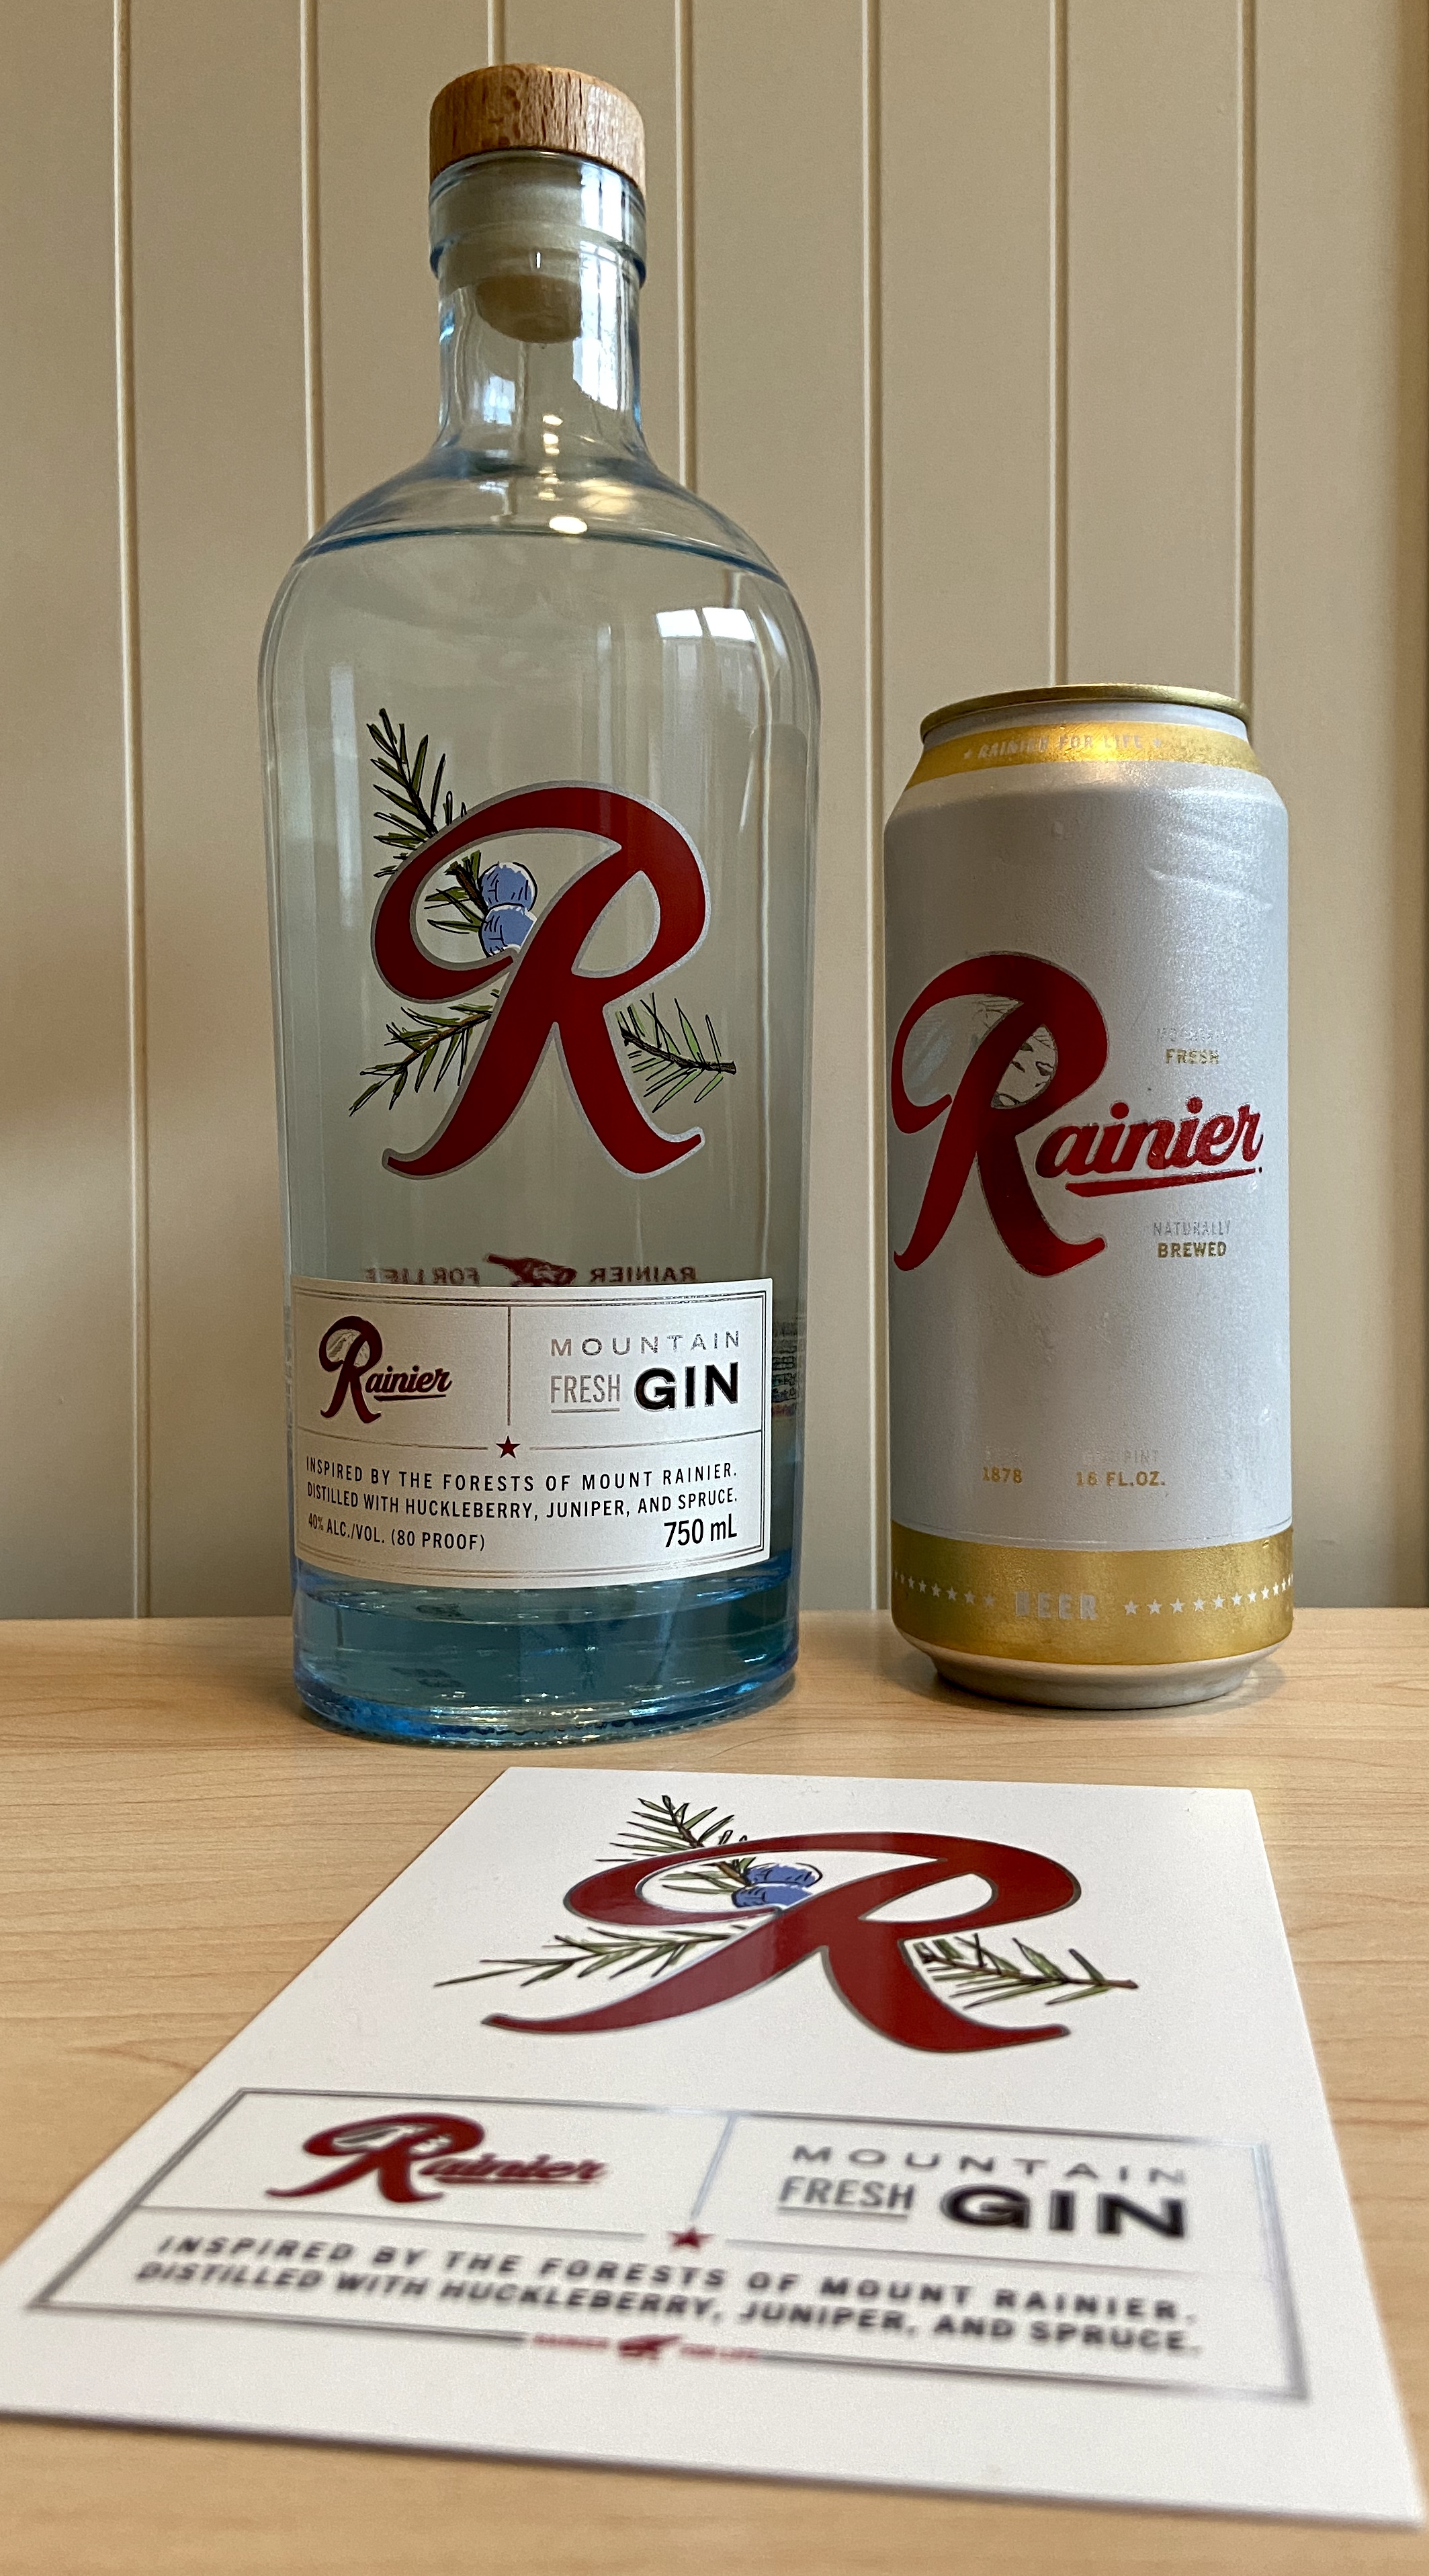 The iconic Rainier has expanded into spirits with the new Rainier Mountain Fresh Gin.